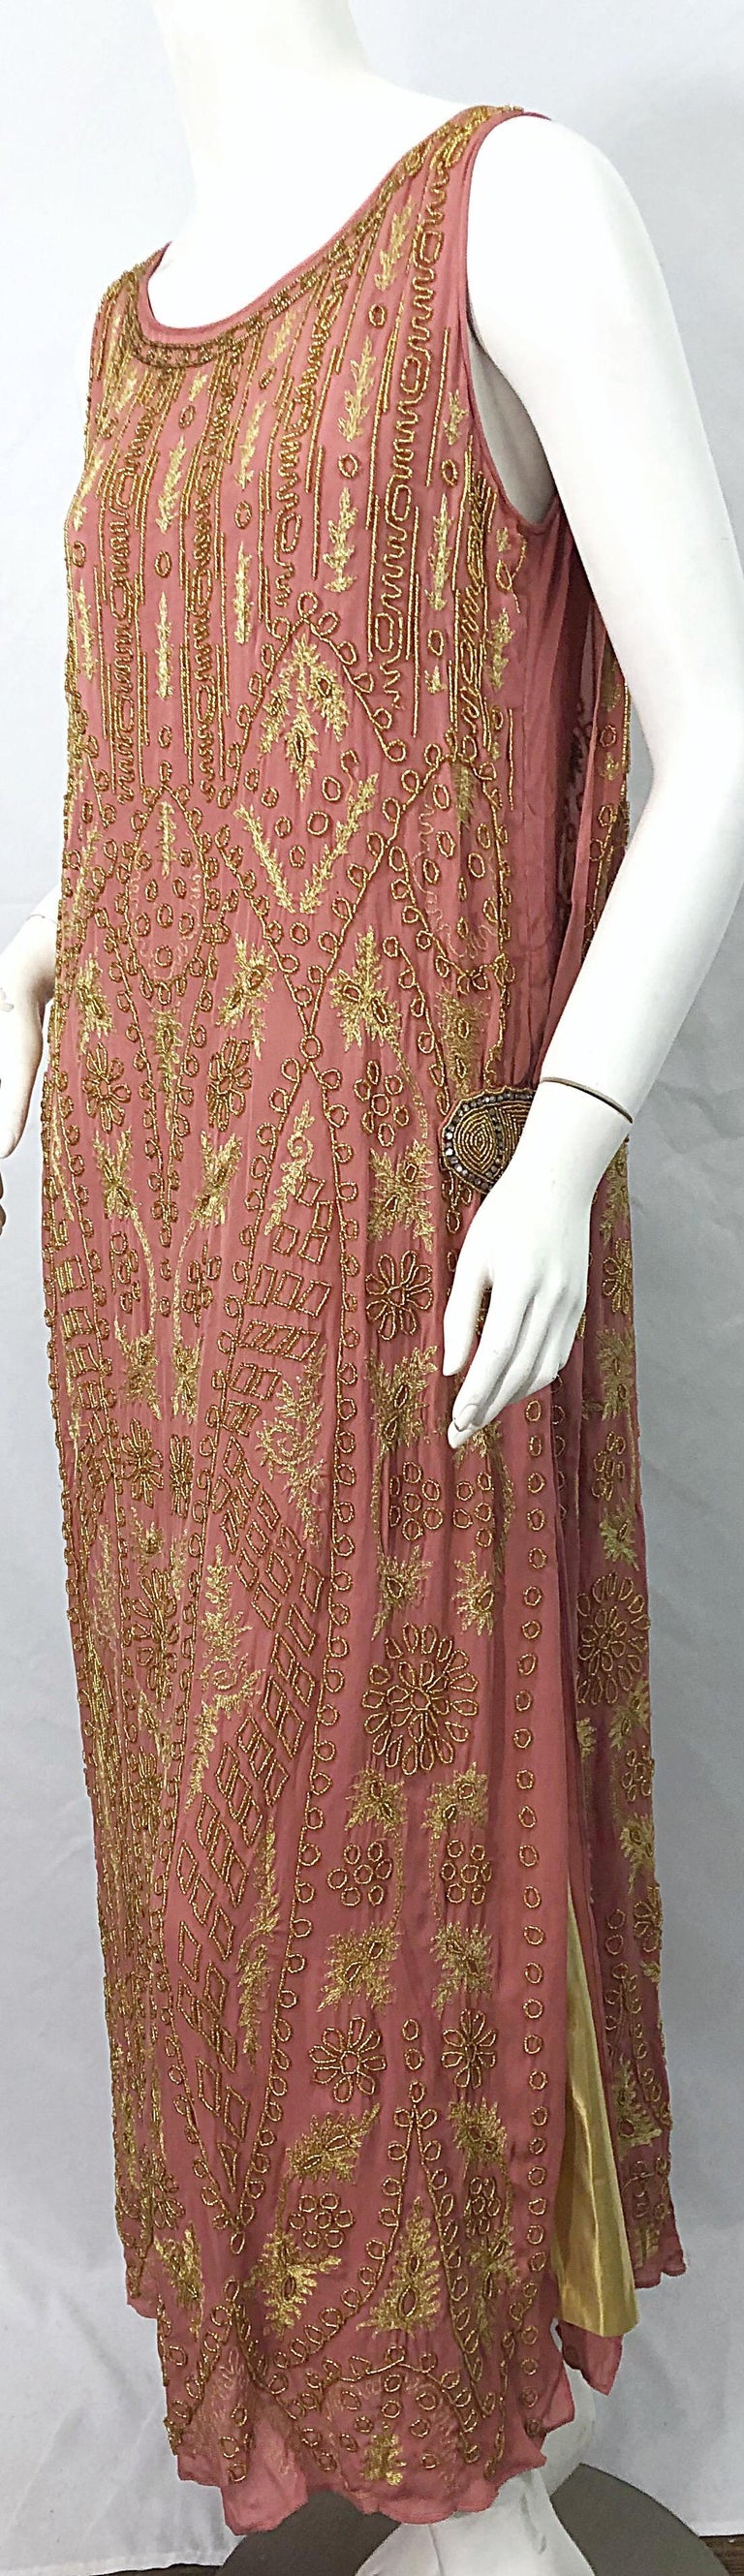 1920s French Couture Pink + Gold Beaded Gatsby Roaring 20s Vintage Flapper Dress In Excellent Condition For Sale In Chicago, IL